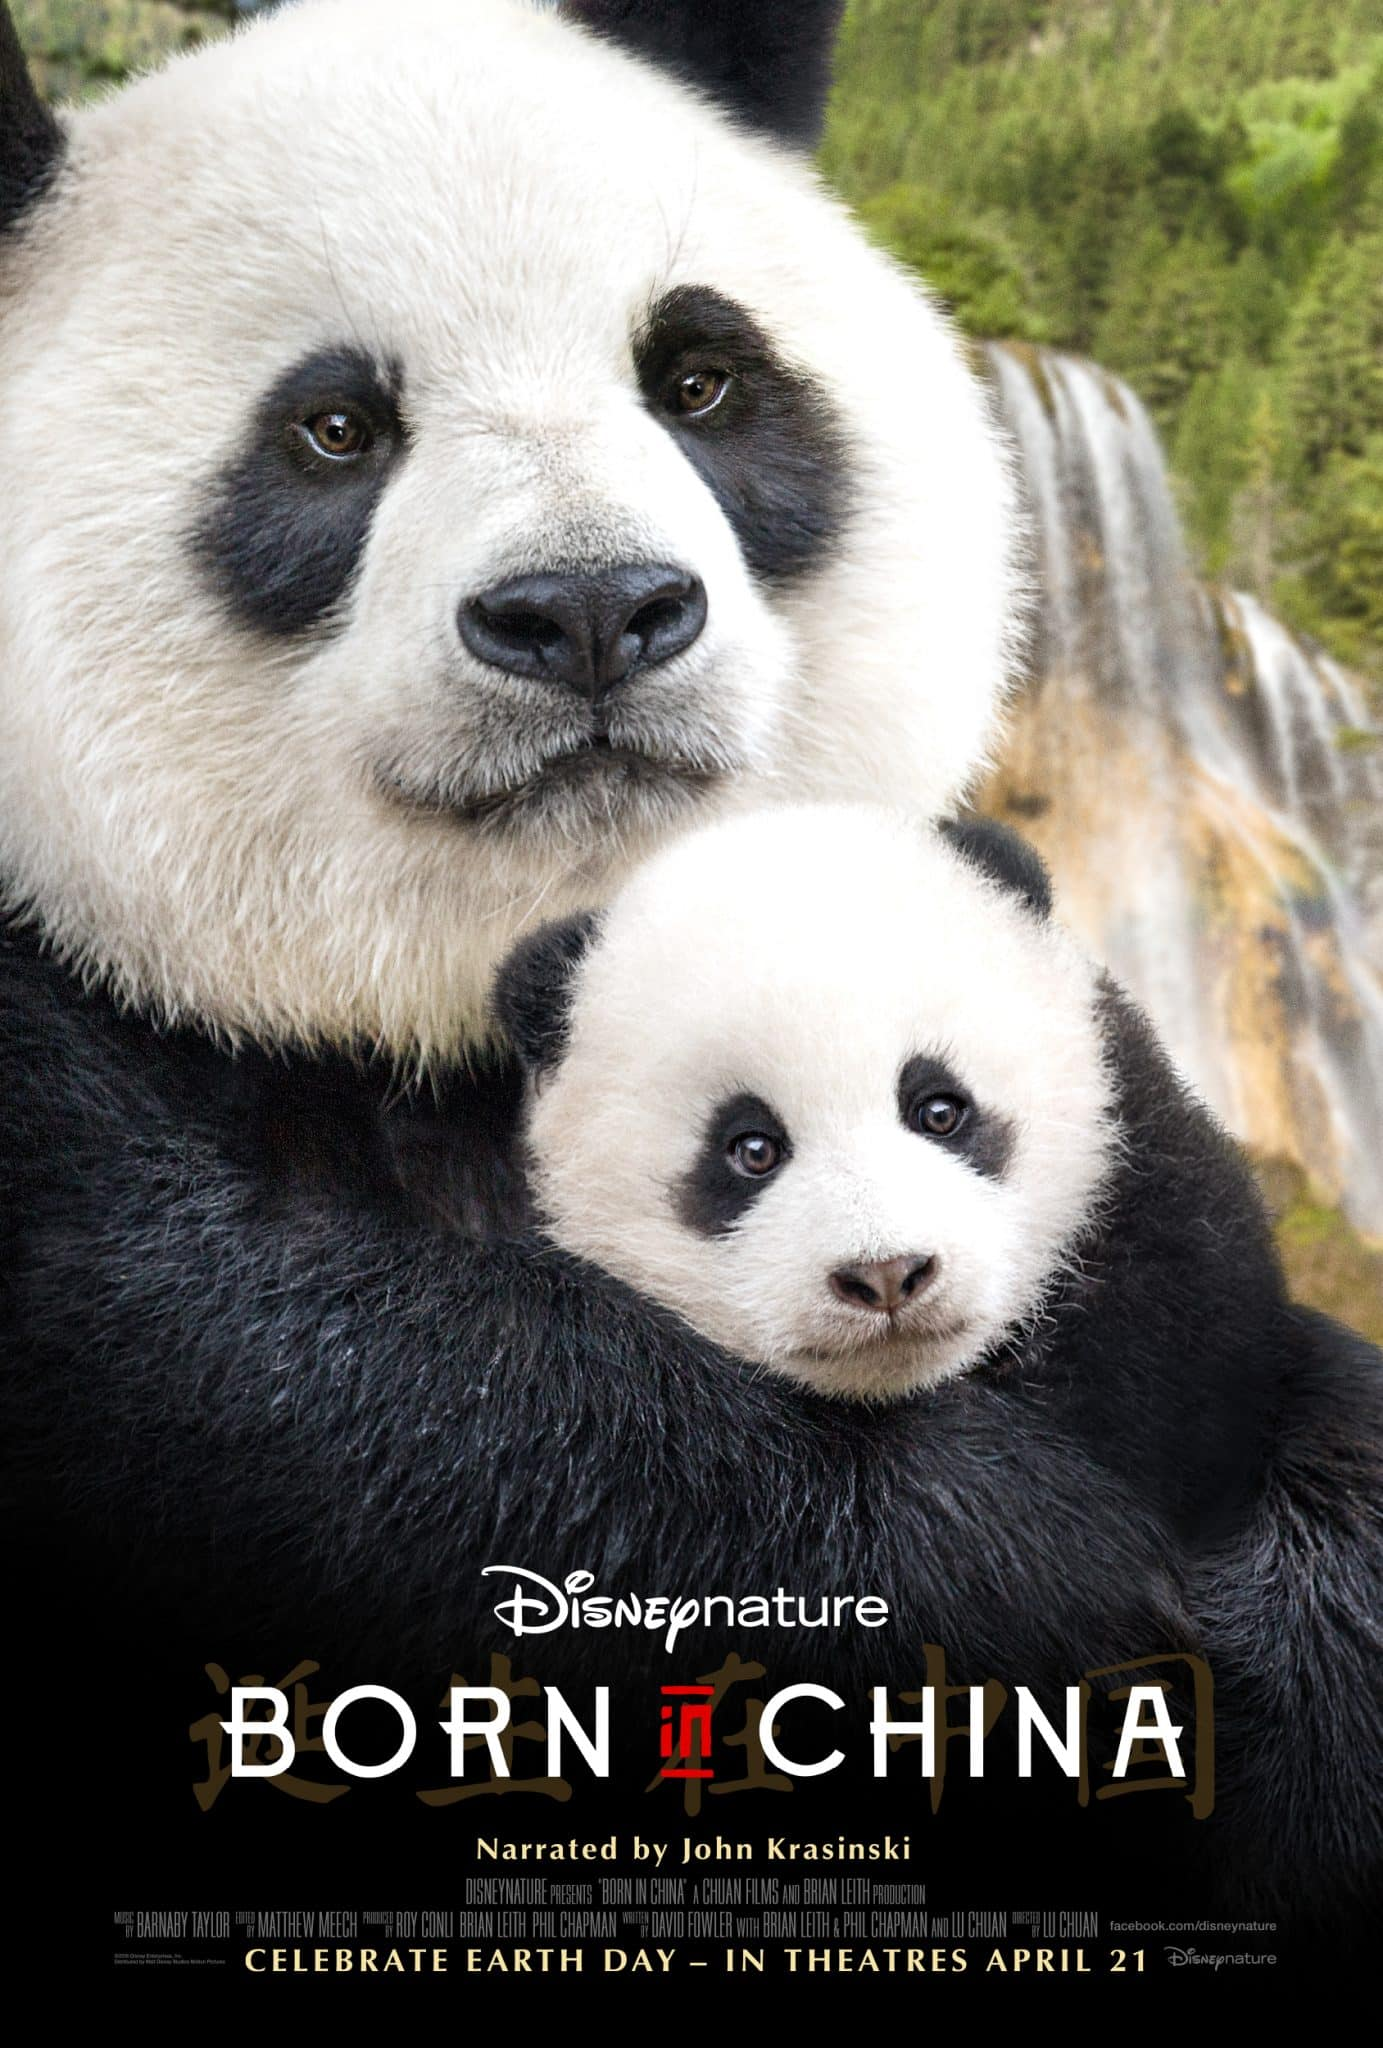 Born In China Film Review + Details about Theatrical Release! #BornInChina #Cars3Event